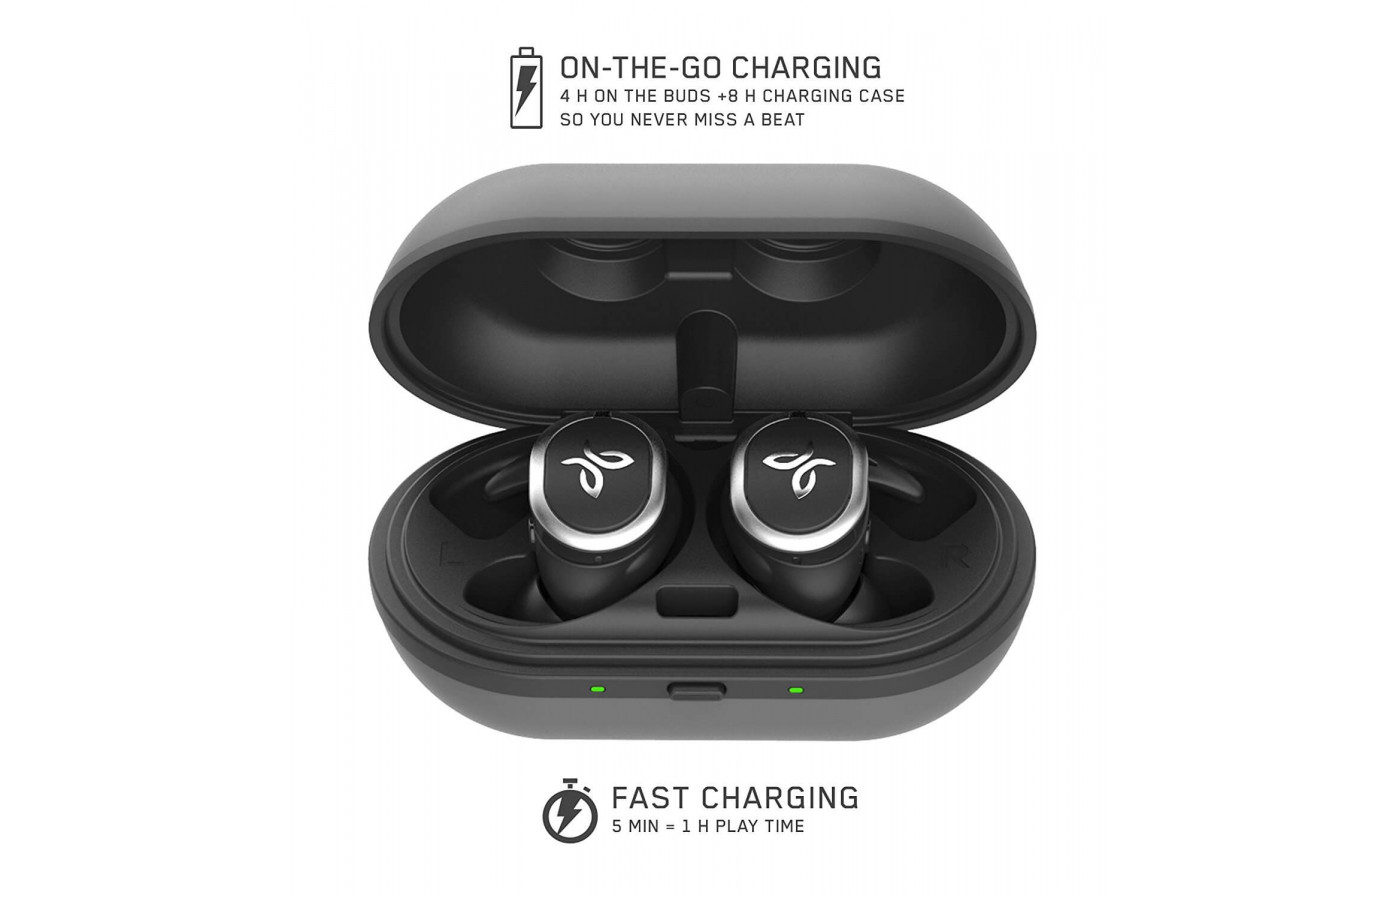 The Jay Bird Run headphones come with a carrying case that also functions as a charger